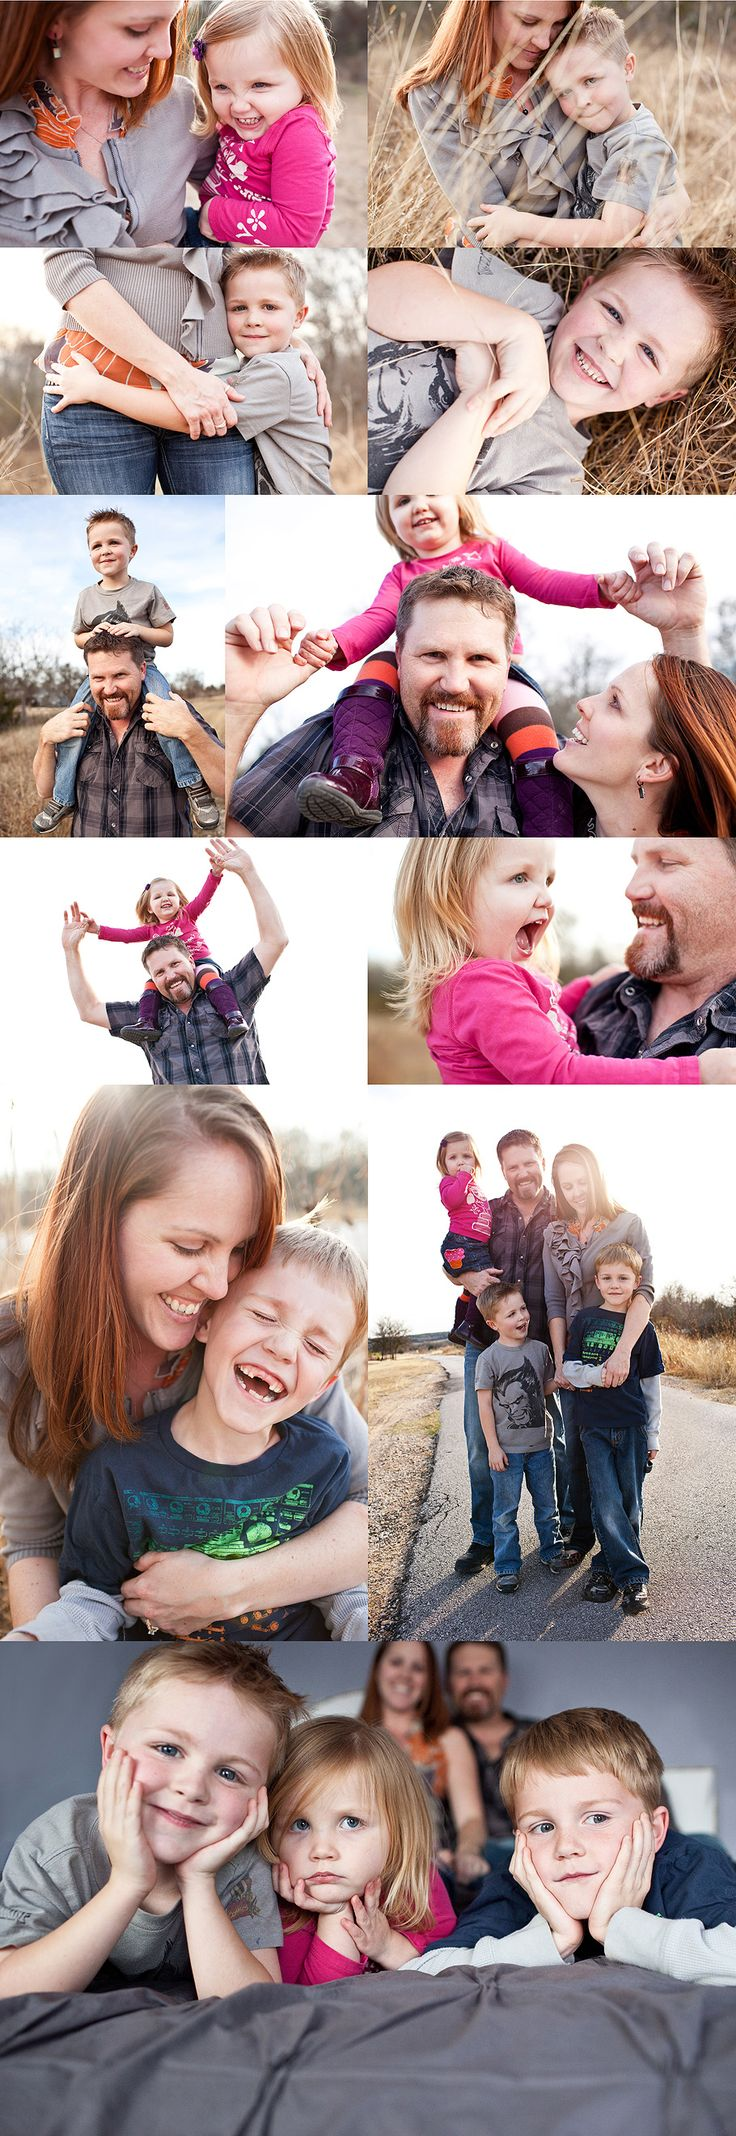 family: Families Shoots, Families Pictures, Photo Ideas, Outdoor Photography, Family Photo Shoots, Families Photo Session, Families Pics, Families Portraits, Families Photo Shoots